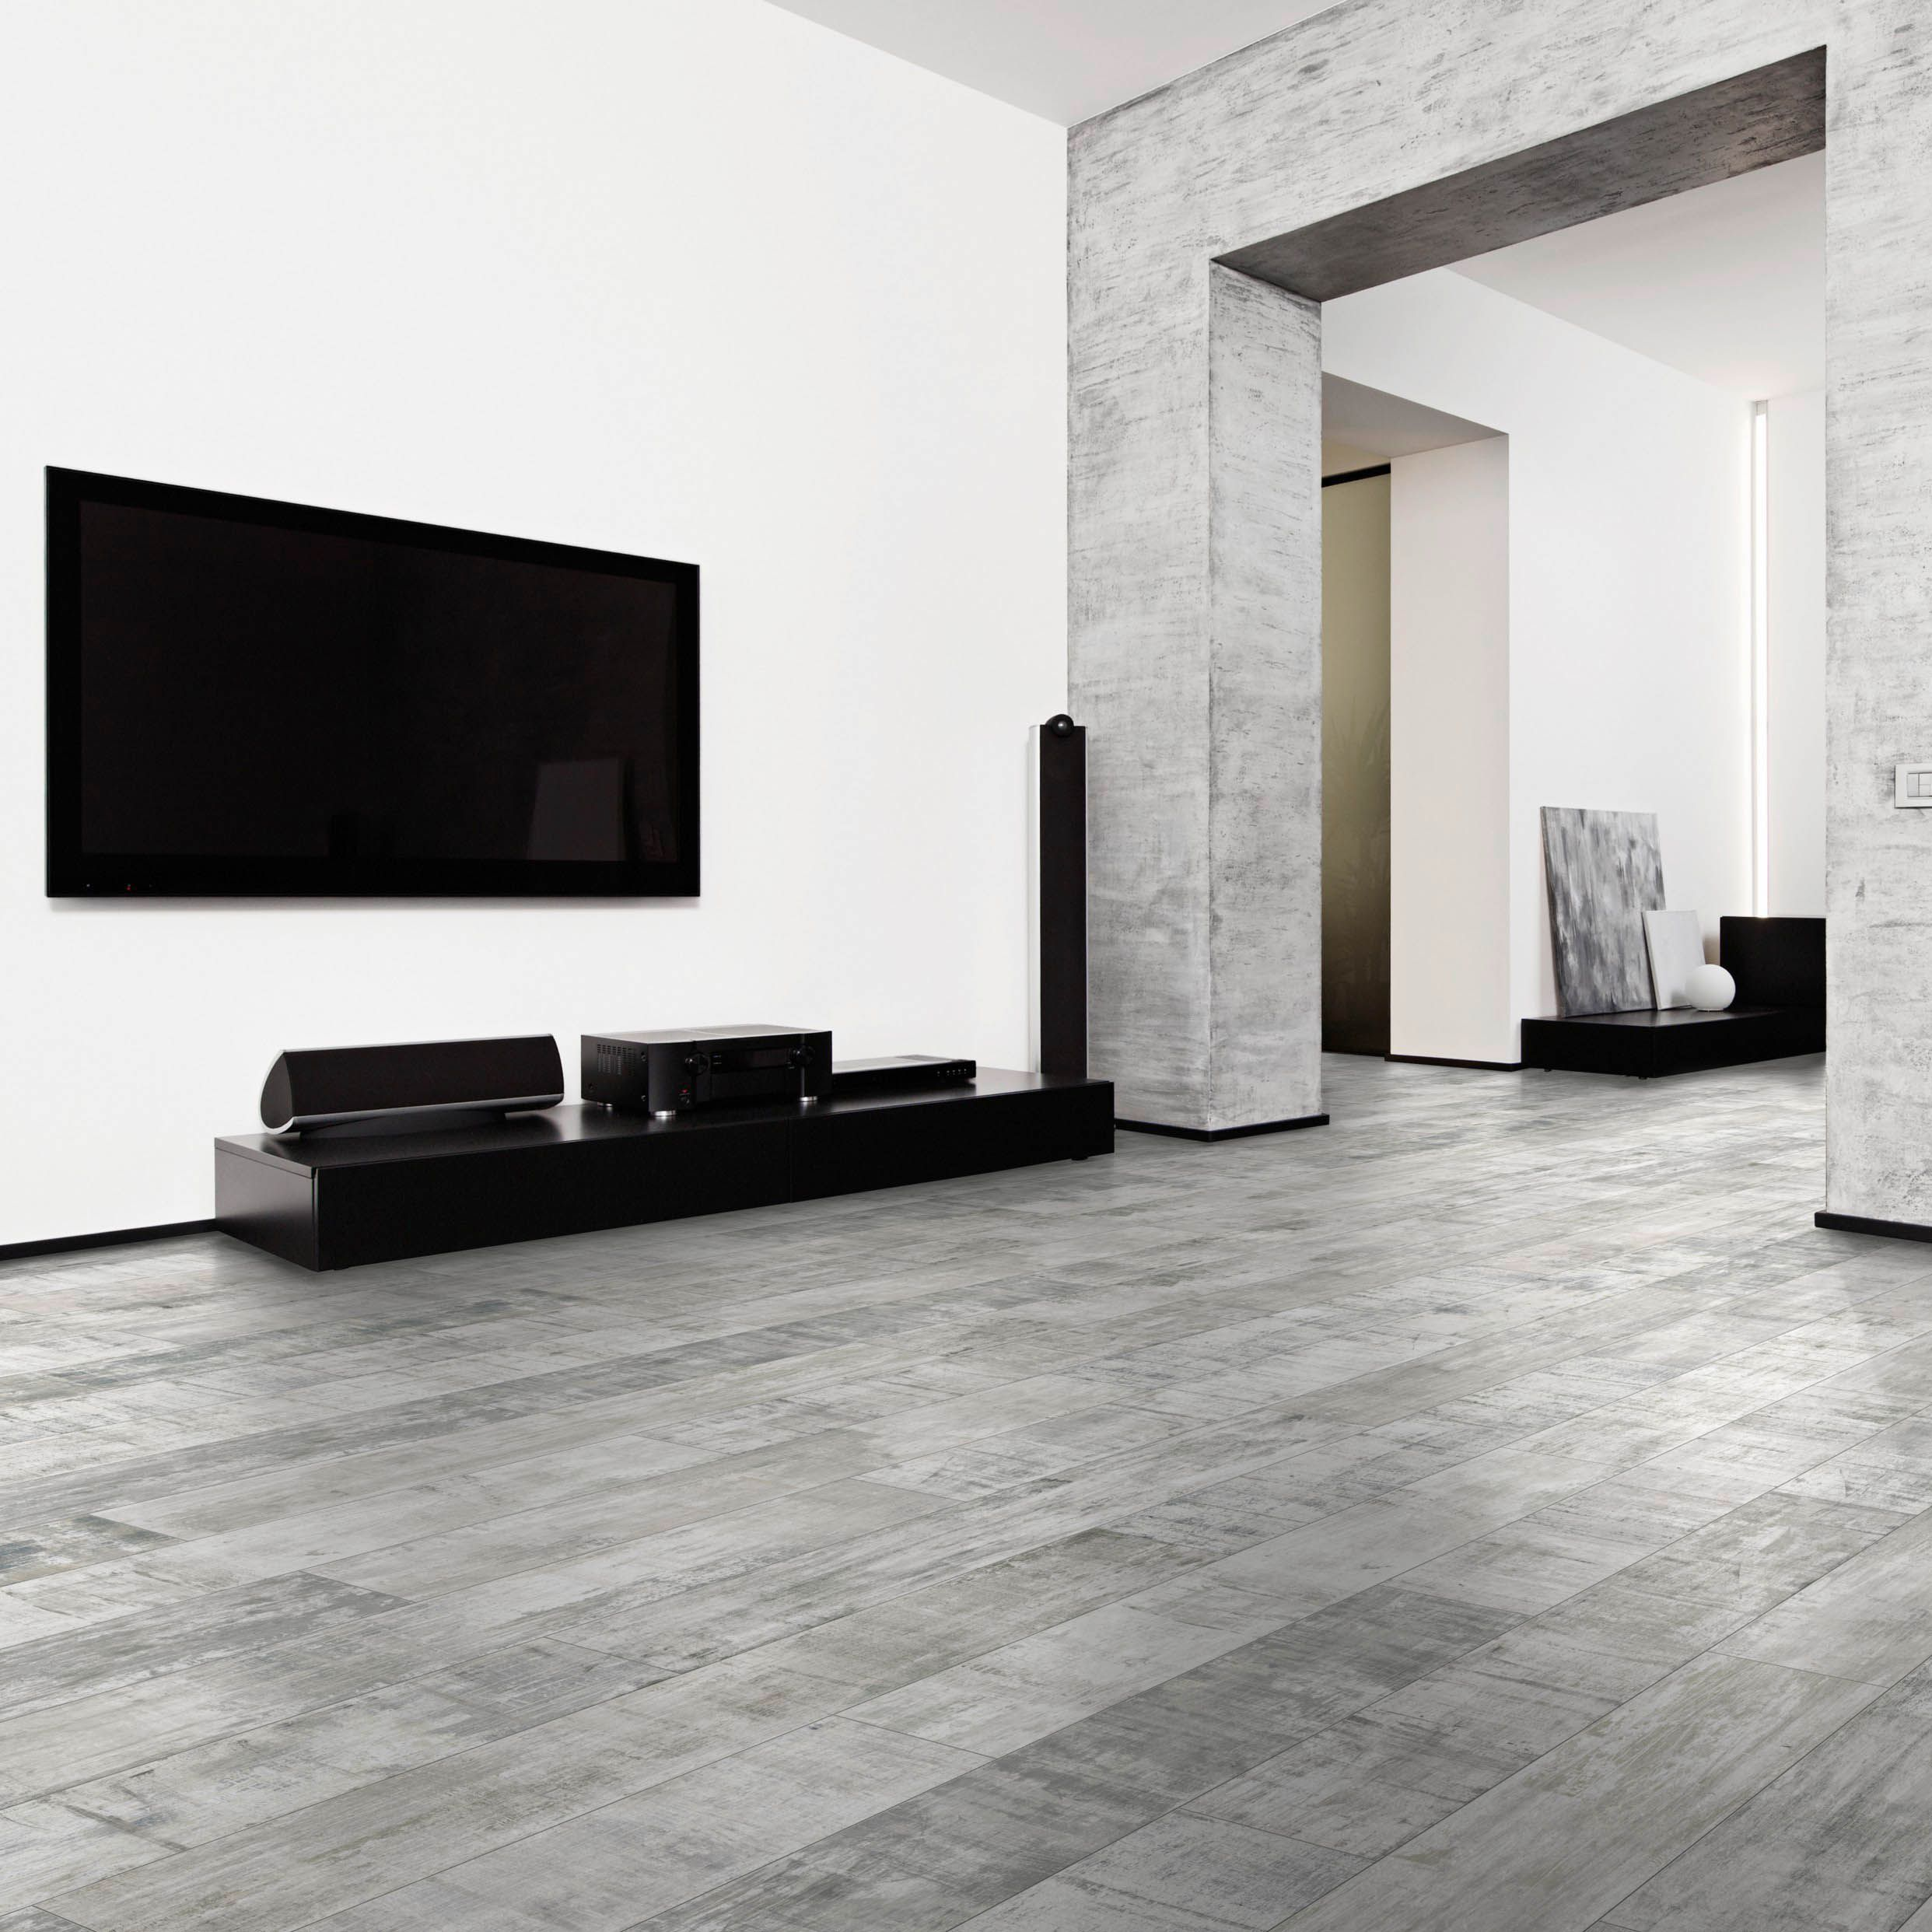 Belcanto Malibu Pine Effect Laminate Flooring 1 99 M² Pack Departments Diy At B Q